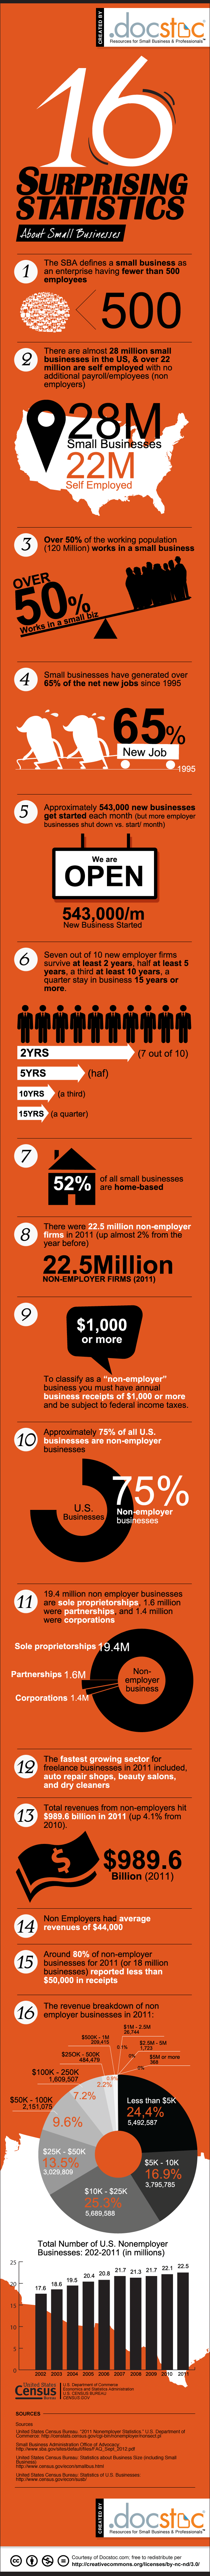 Docstoc small business statistics infographic